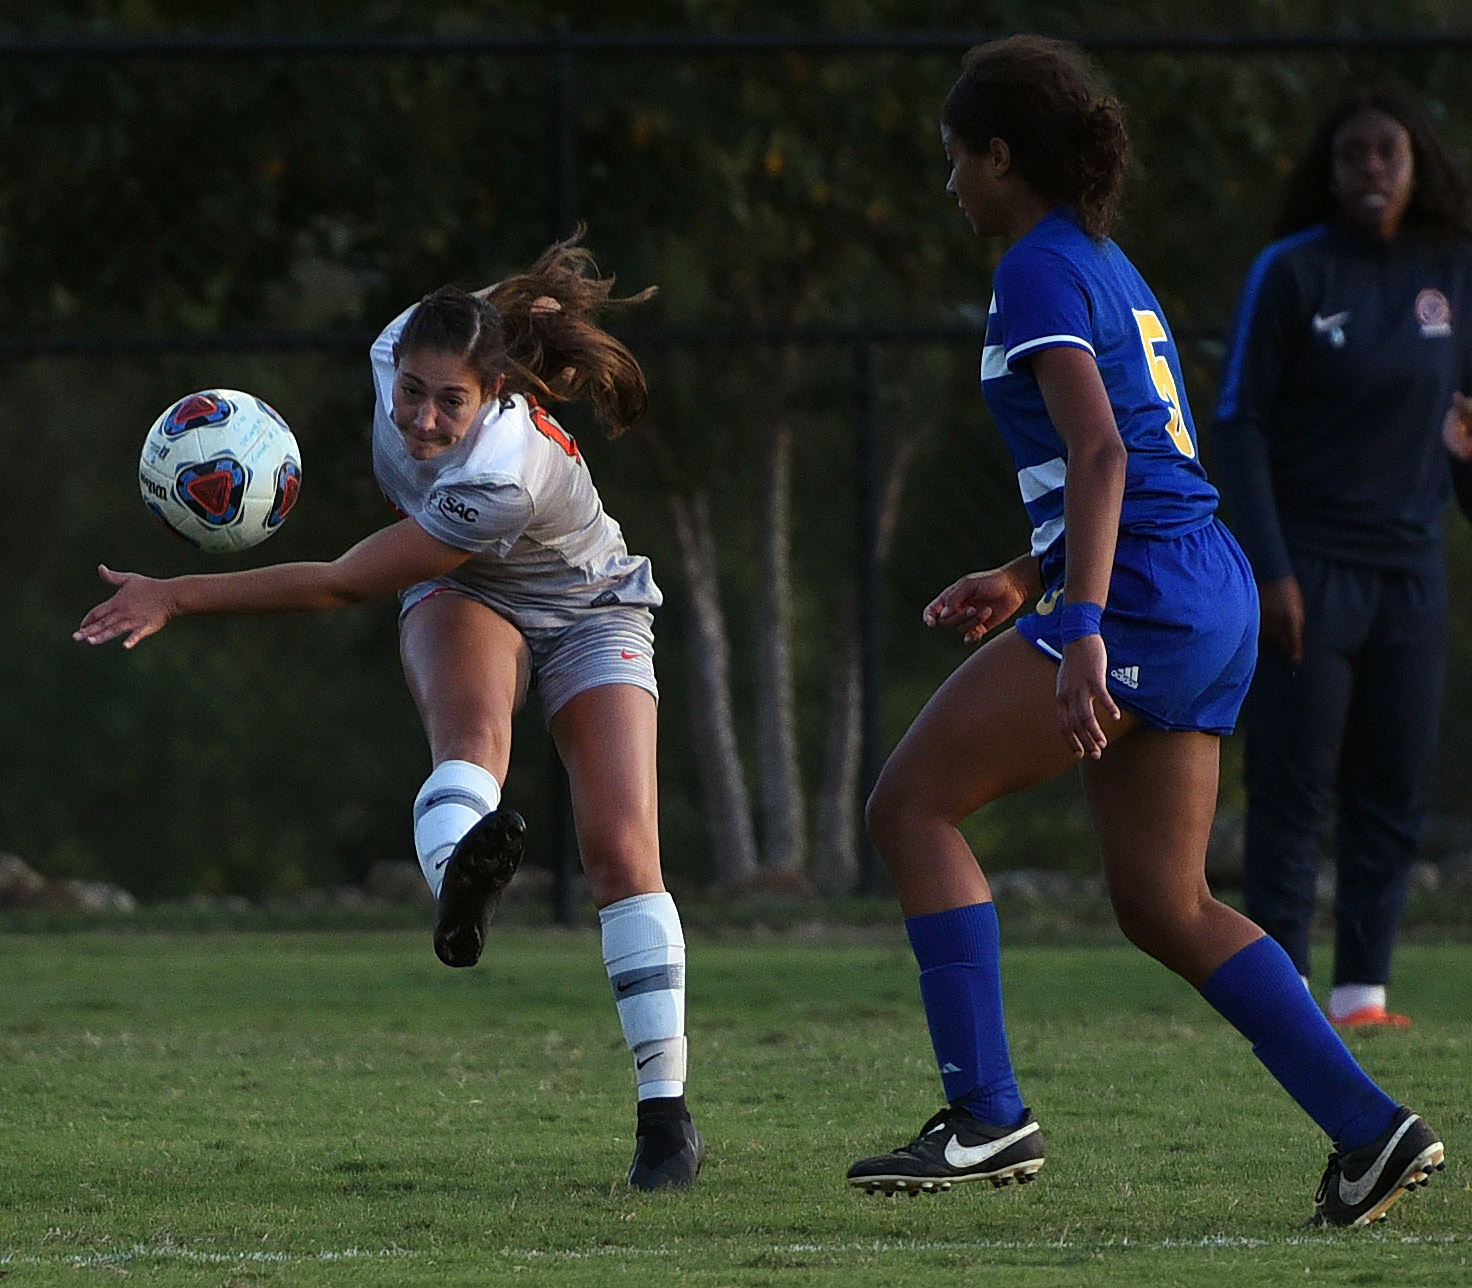 Eagles fall to Bellarmine in season opener